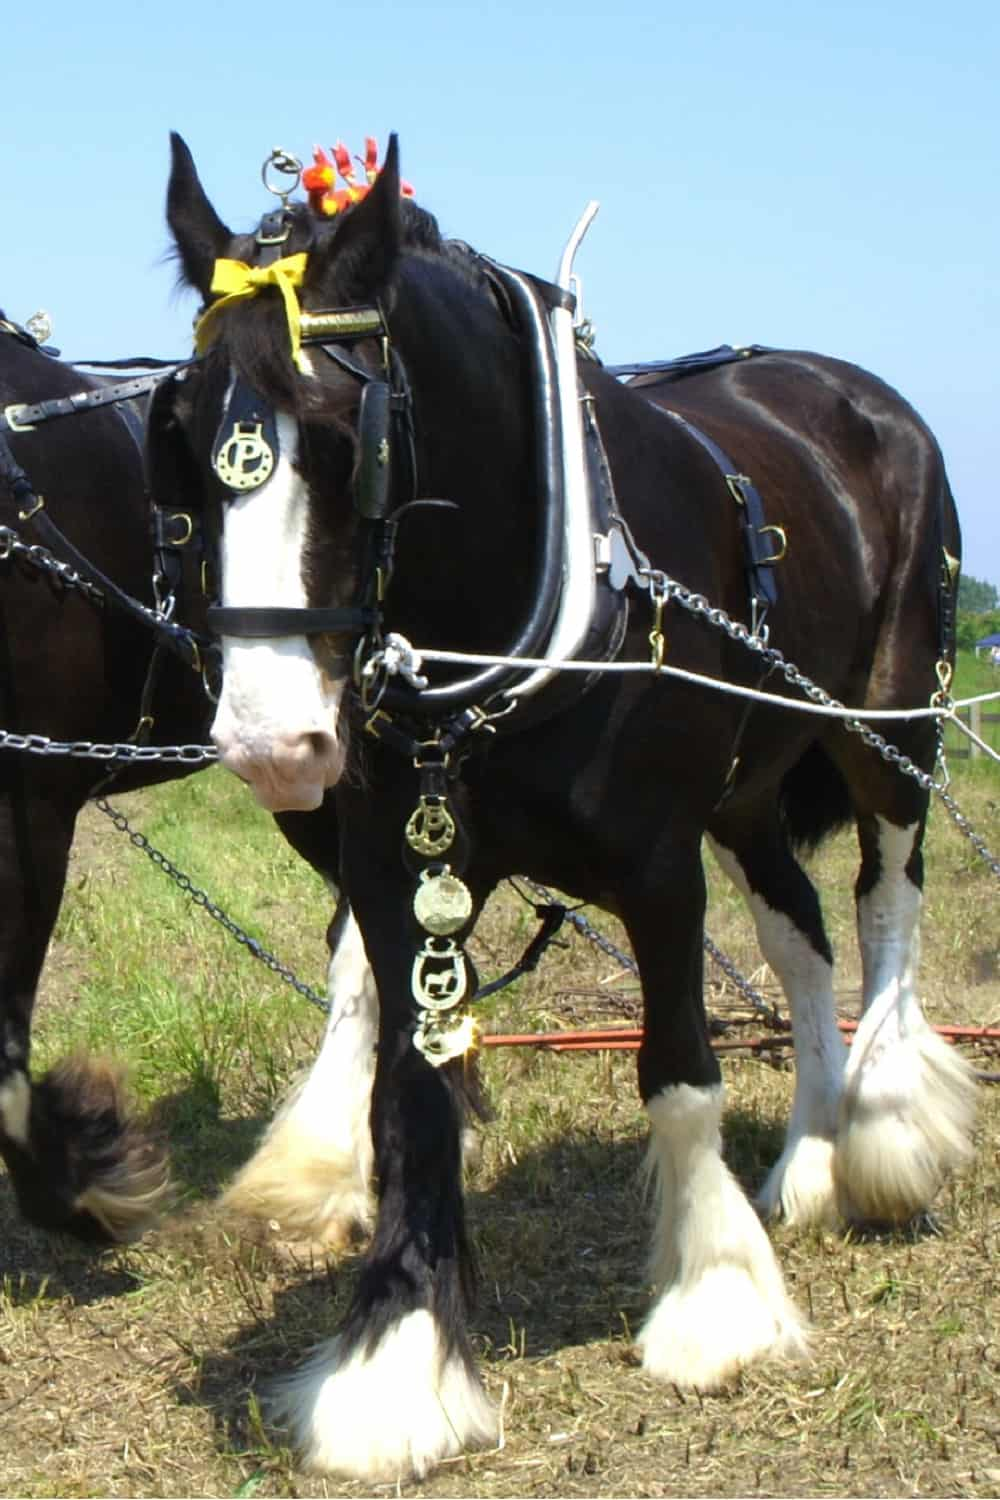 Shire horse work